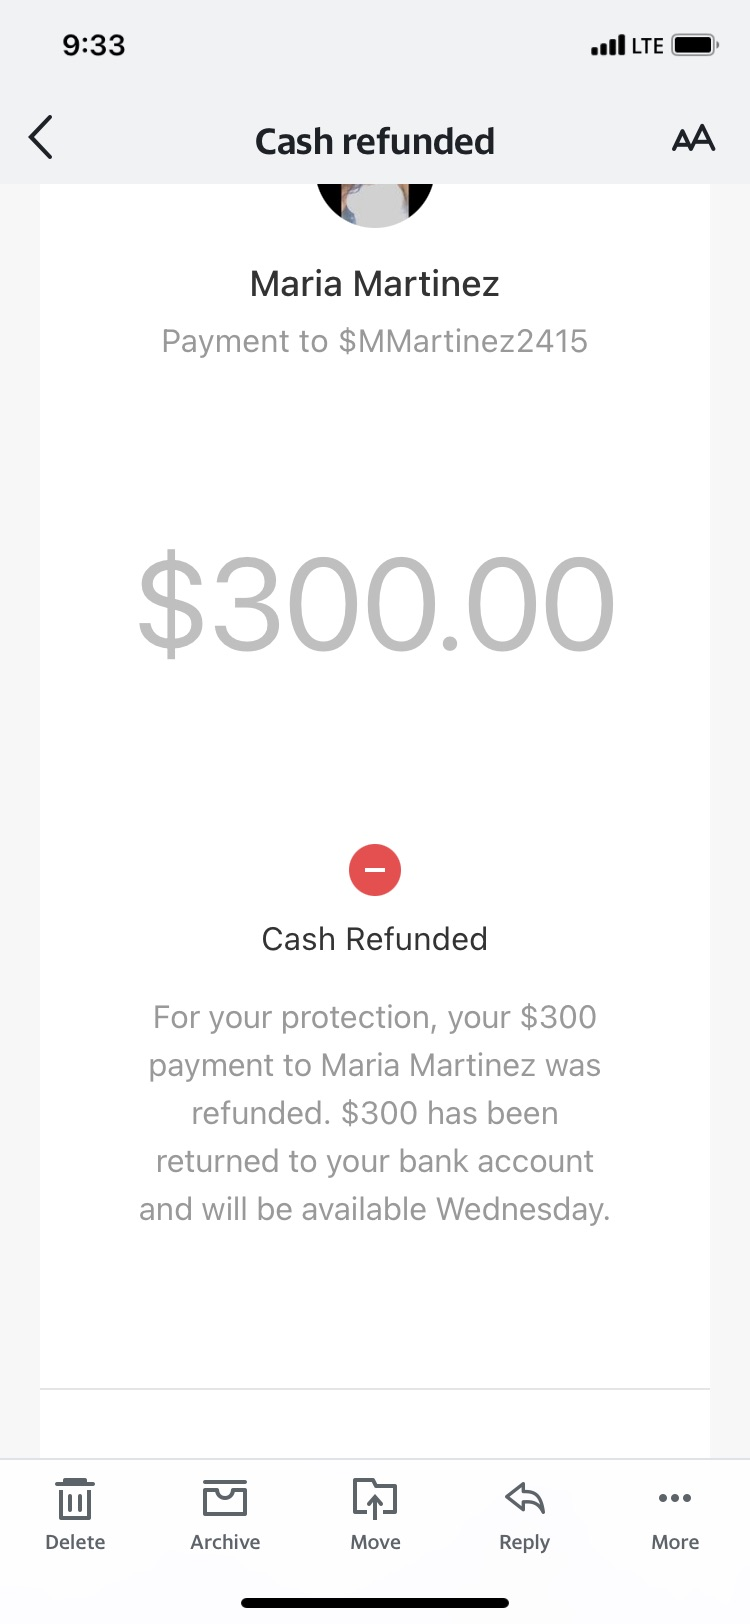 Canceled payment hasn't been returned